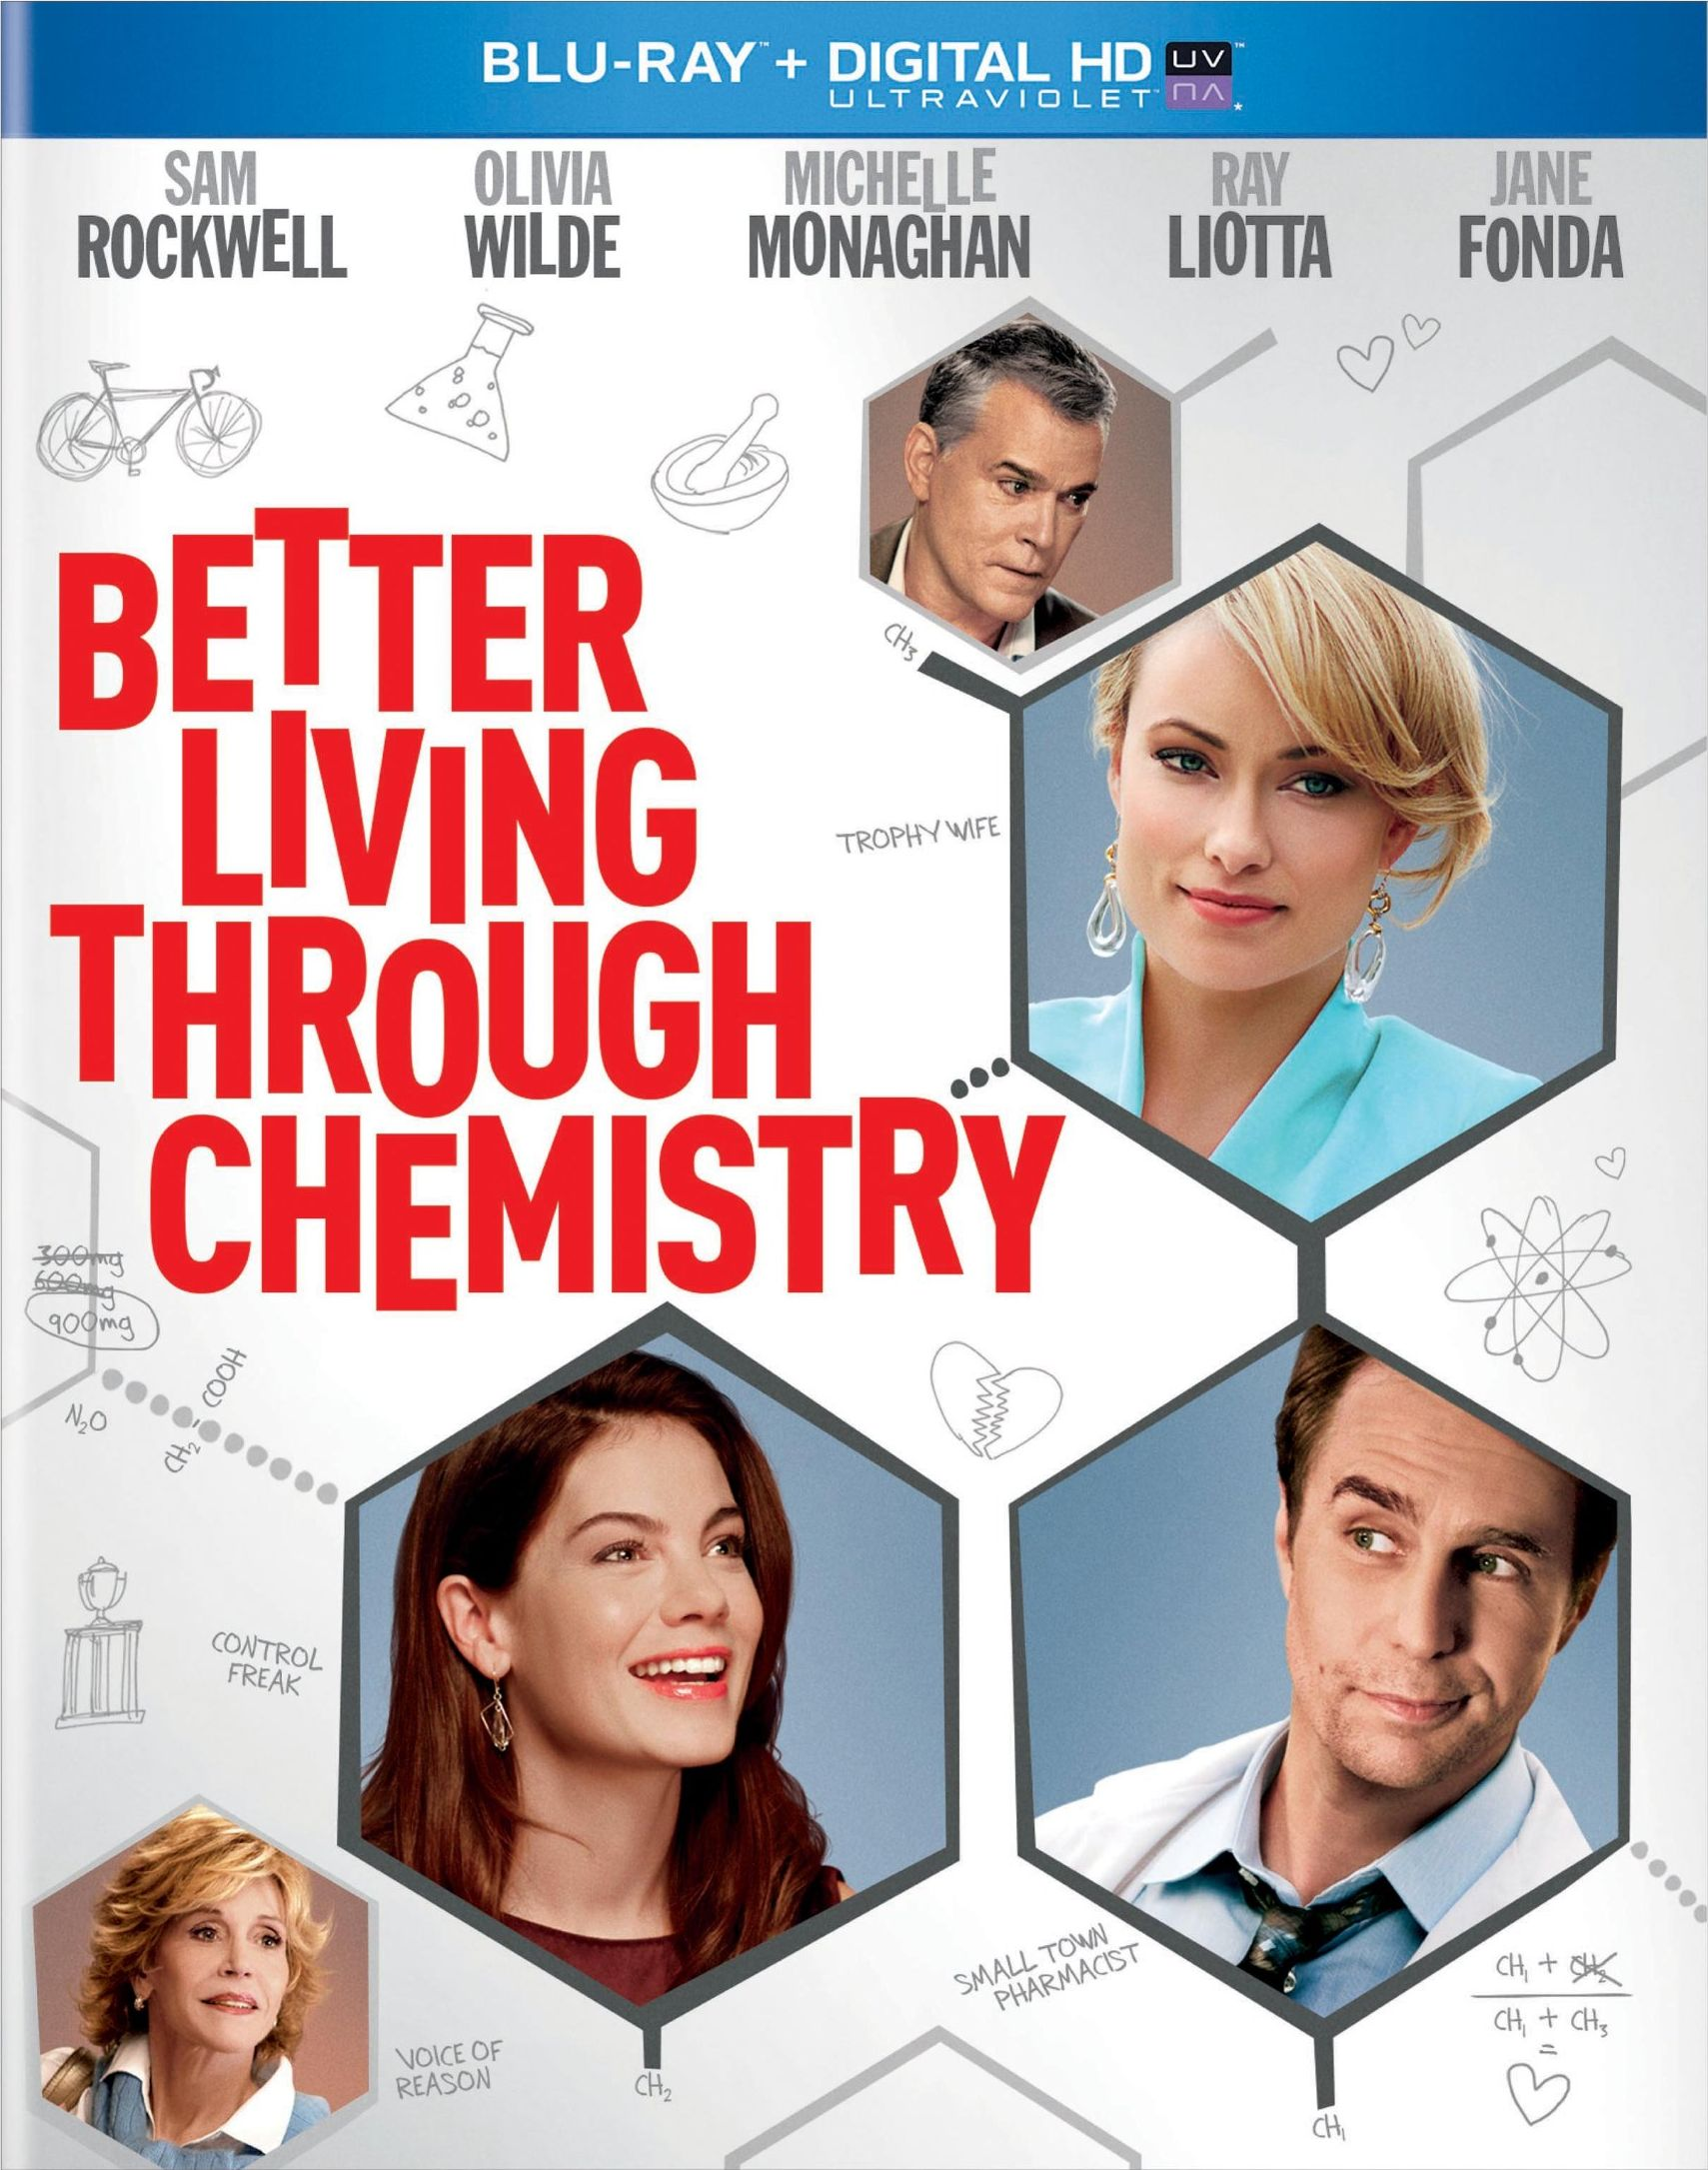 Better Living Through Chemistry Blu-ray Review